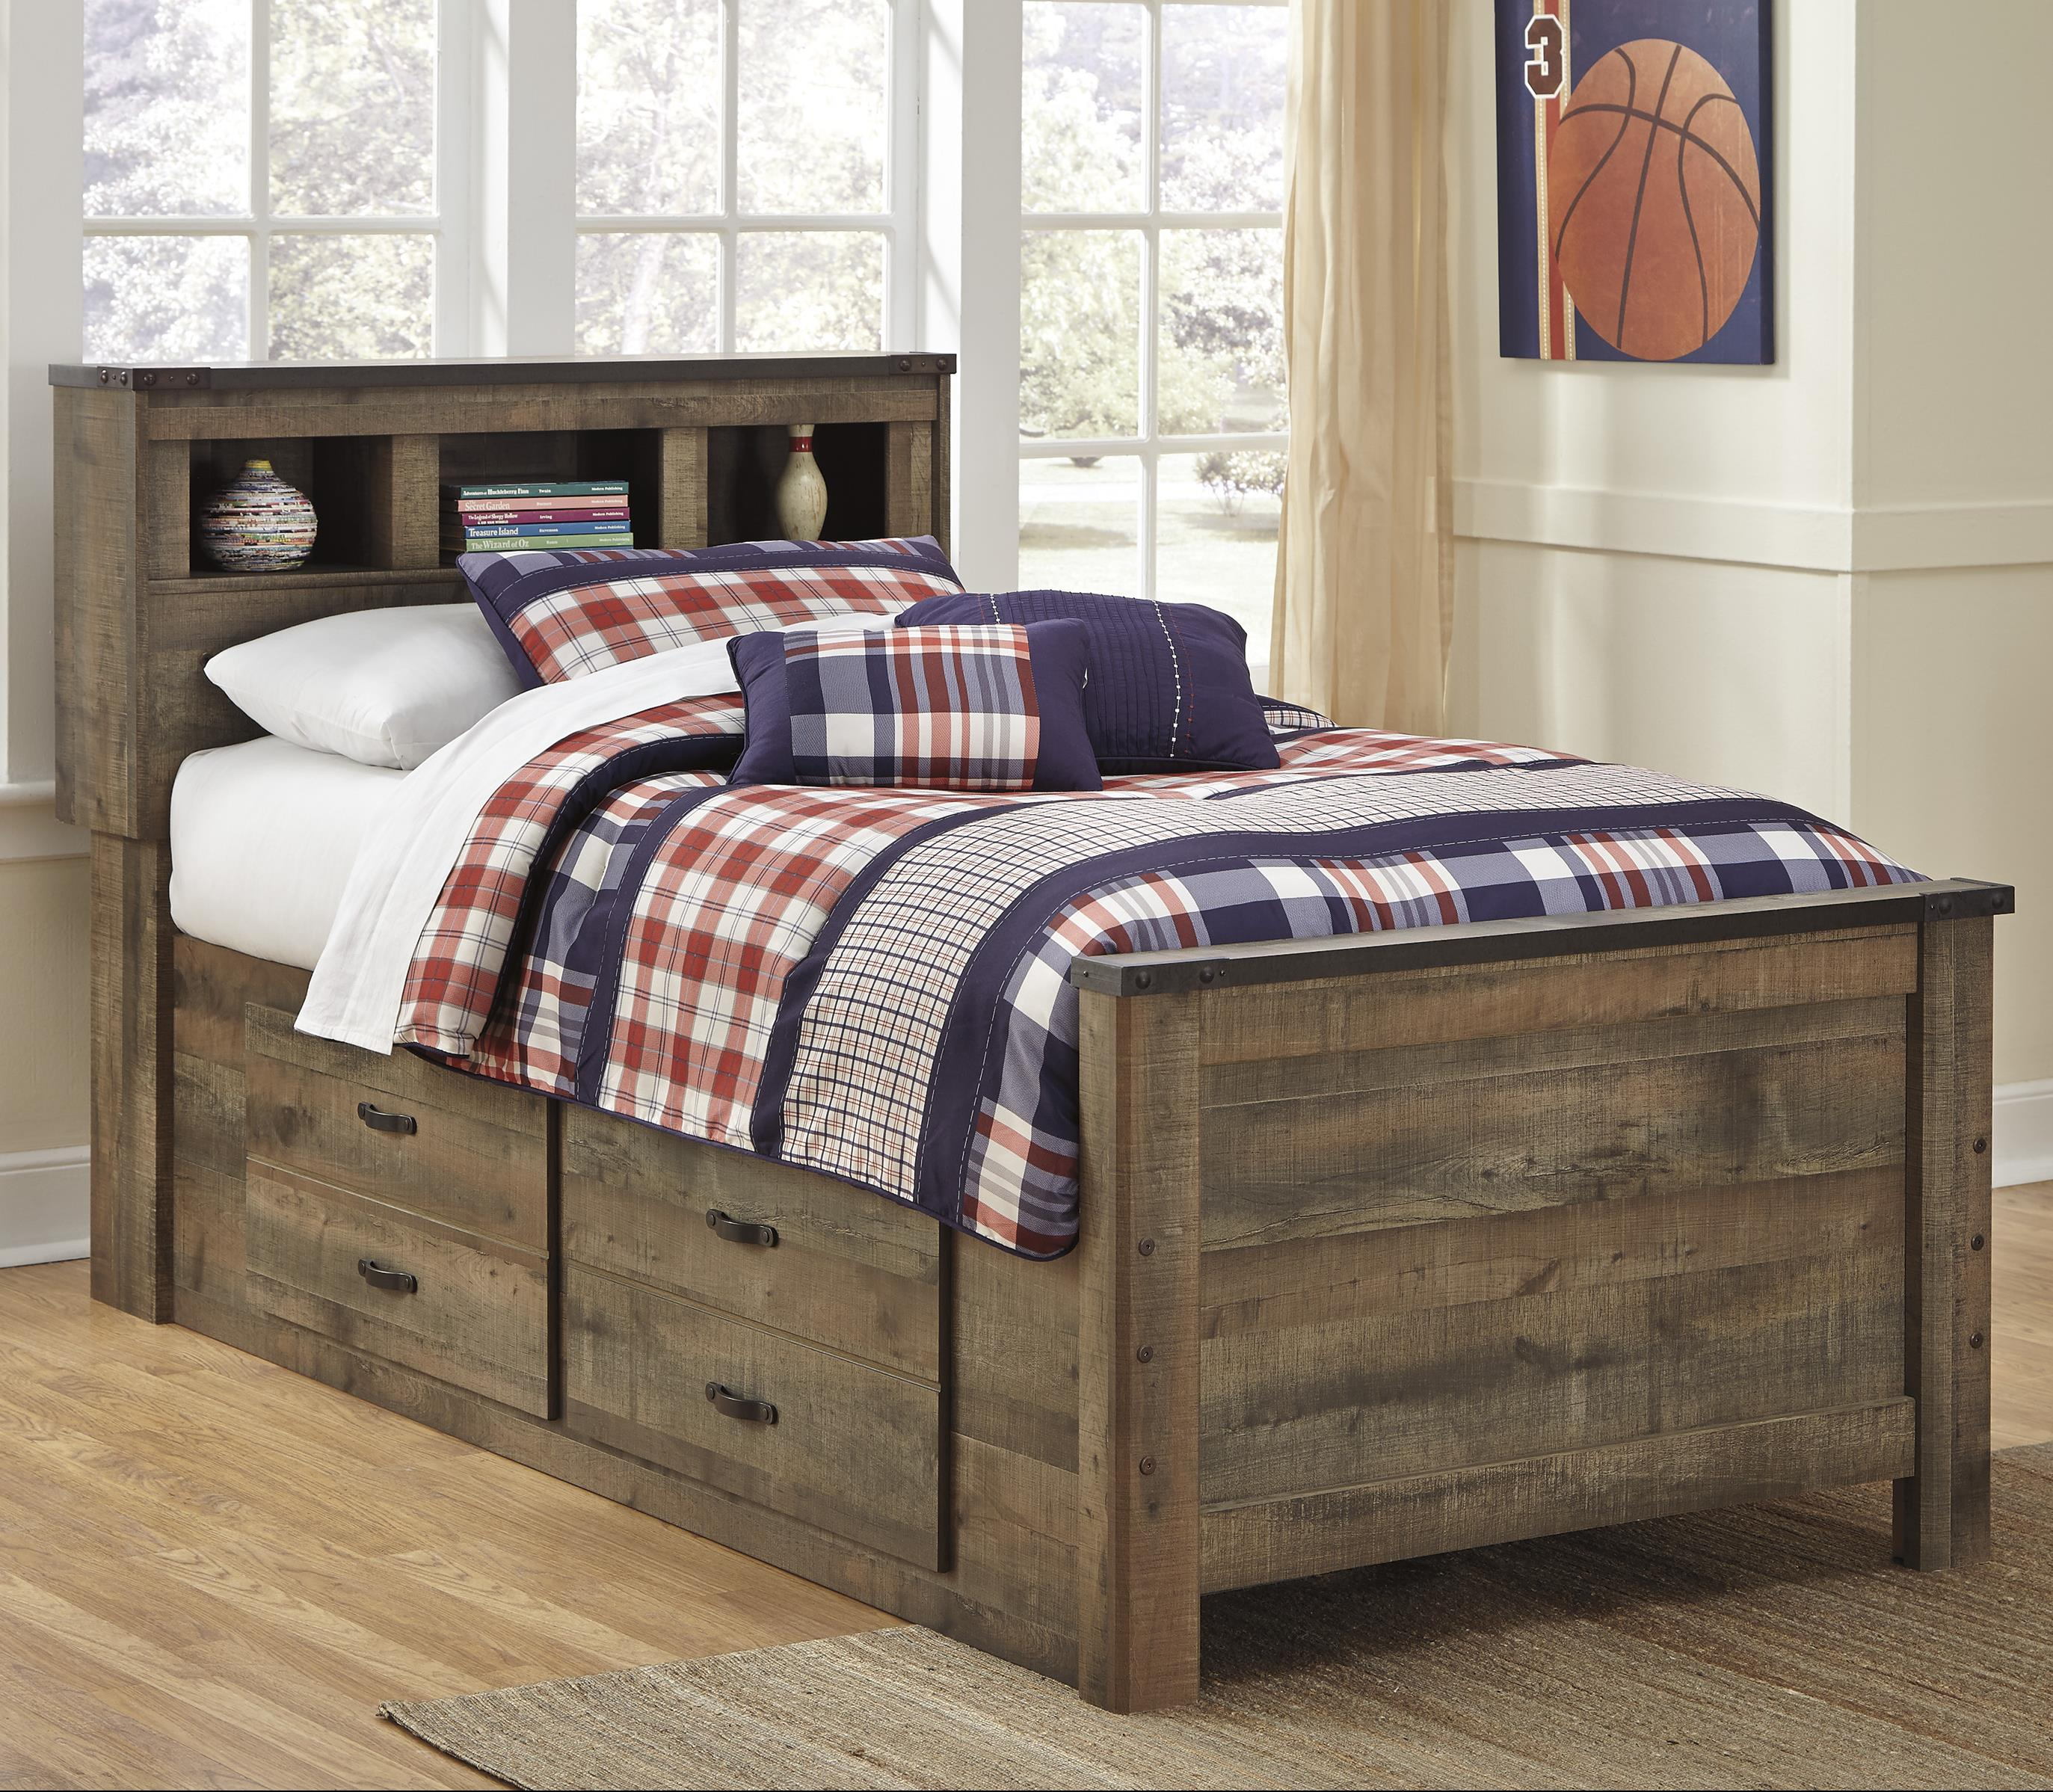 Rustic Look Twin Bookcase Bed With Under Bed Storage By Signature Design By Ashley Wolf And